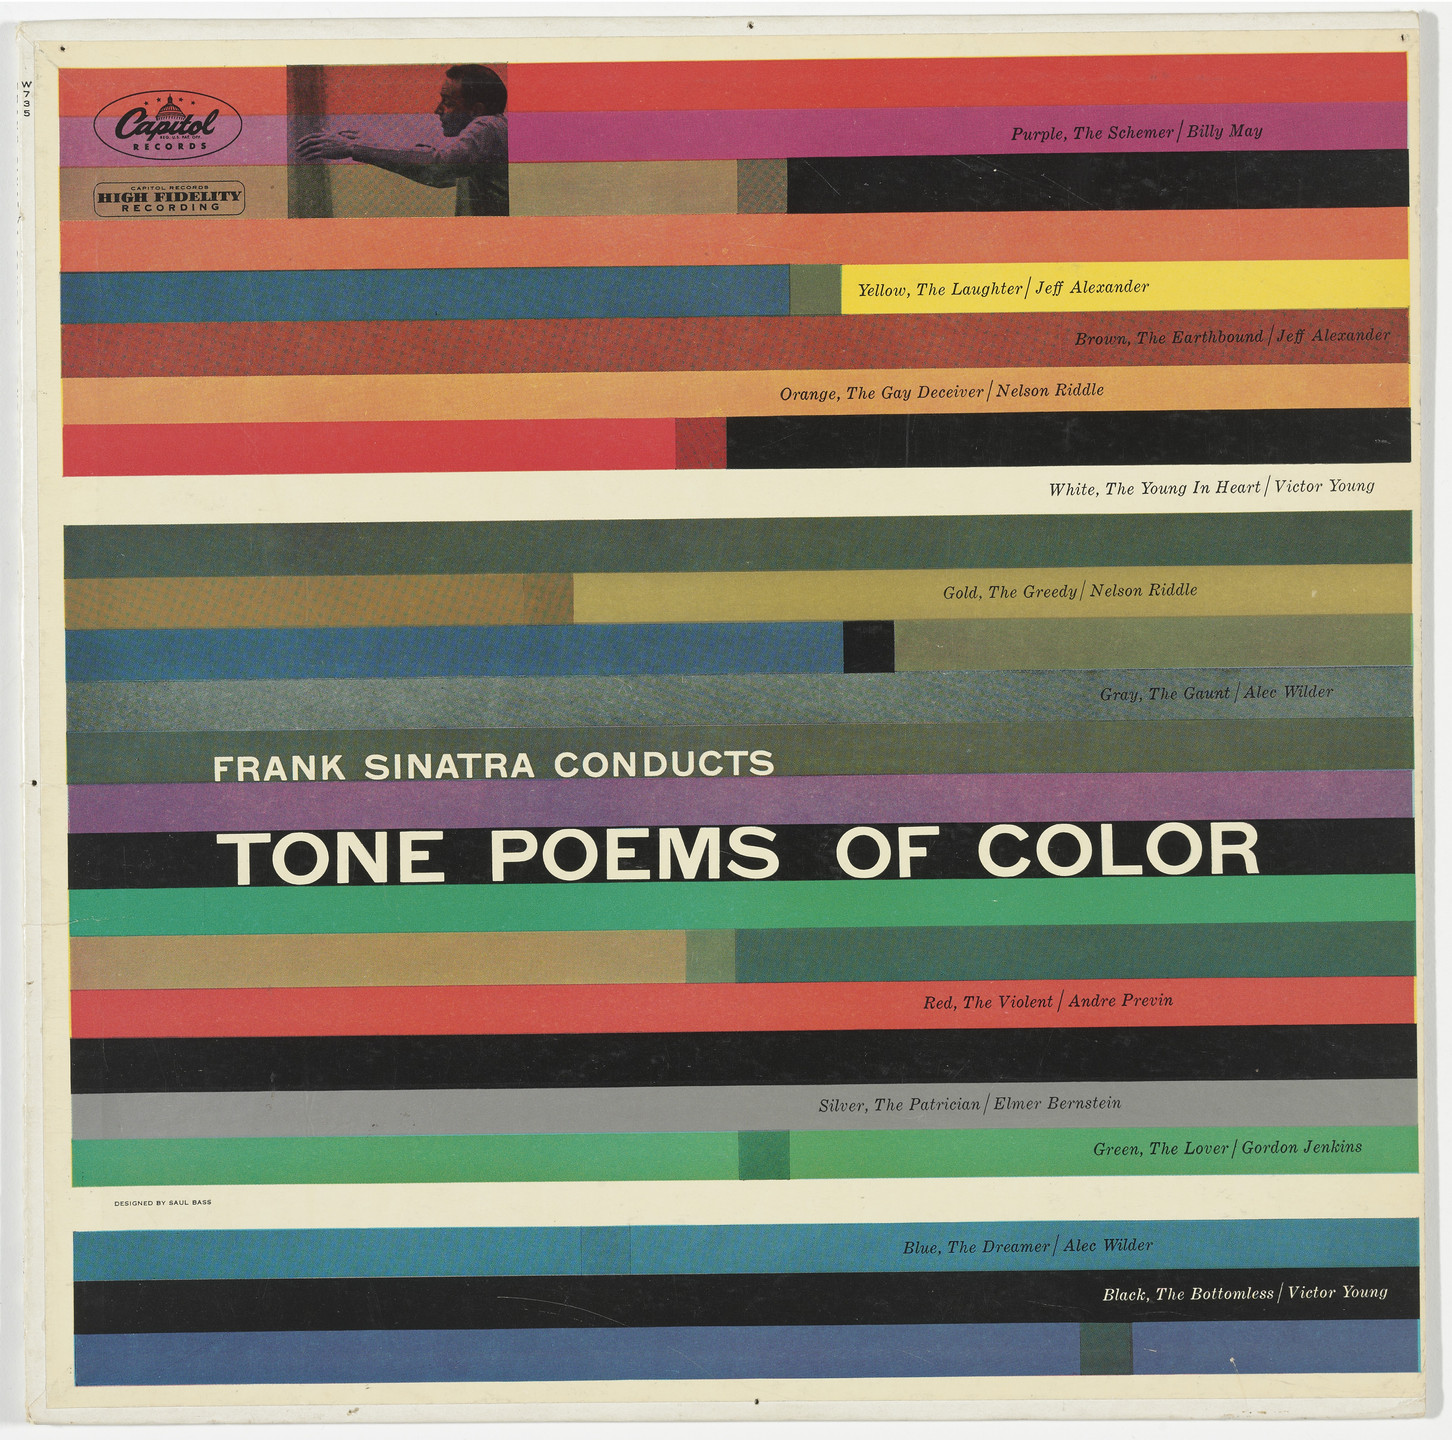 Saul Bass, Frank Sinatra, Capitol Records. Album Cover for Frank Sinatra Conducts Tone Poems of Color. 1956